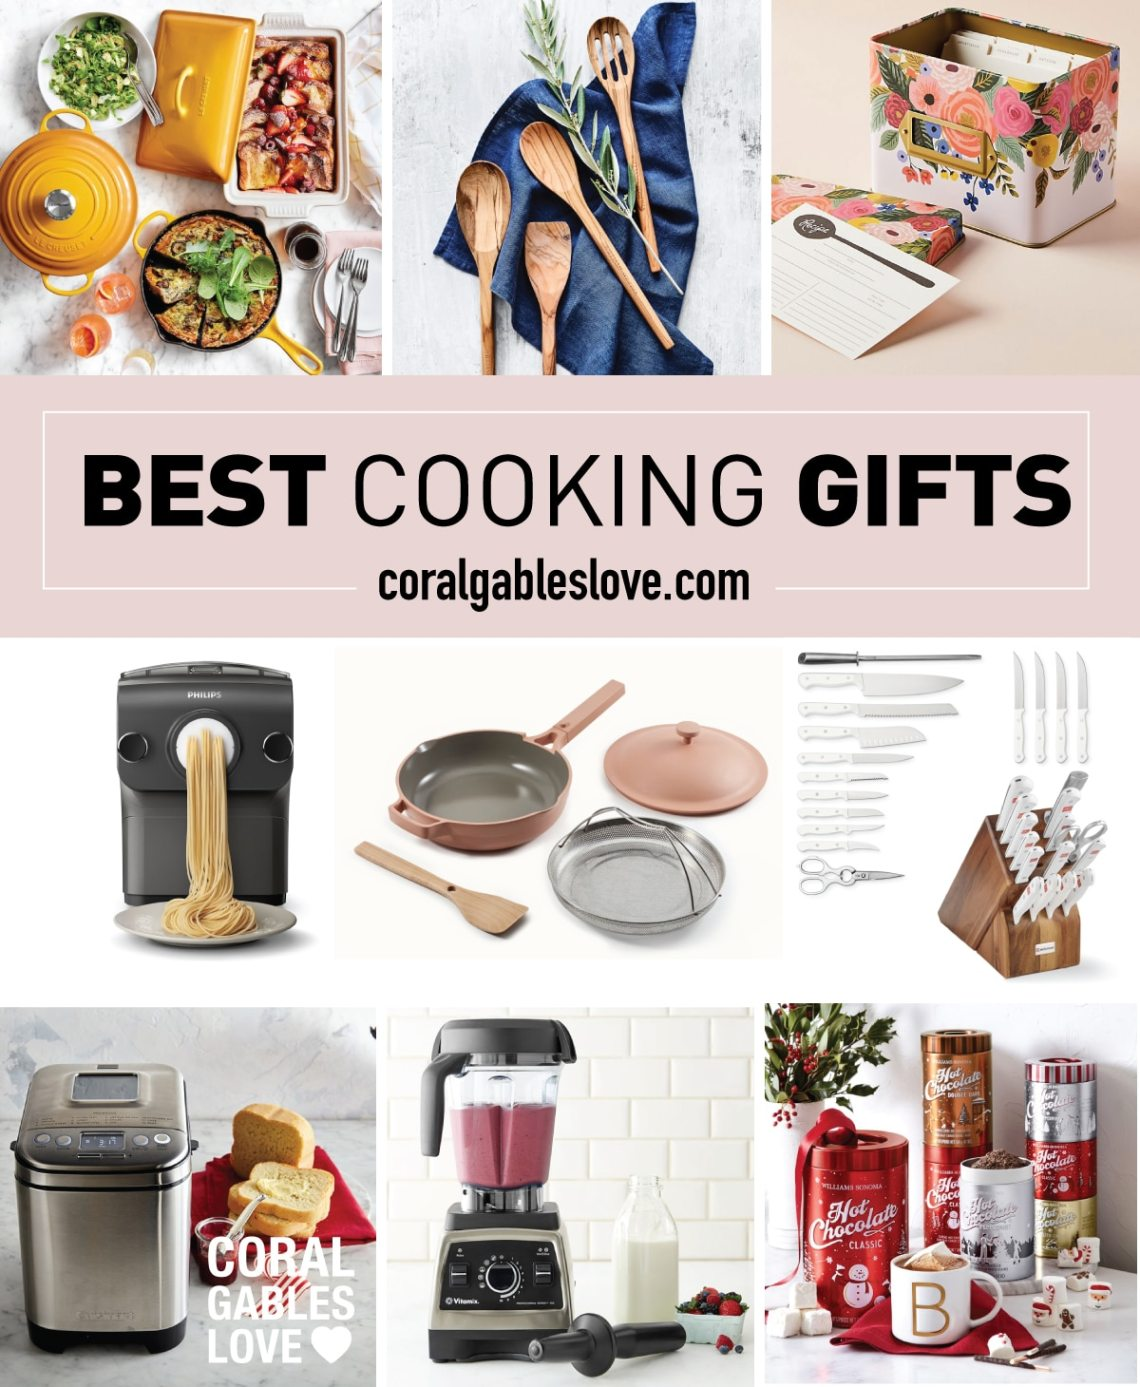 Best Cooking Kitchen Gifts 2020